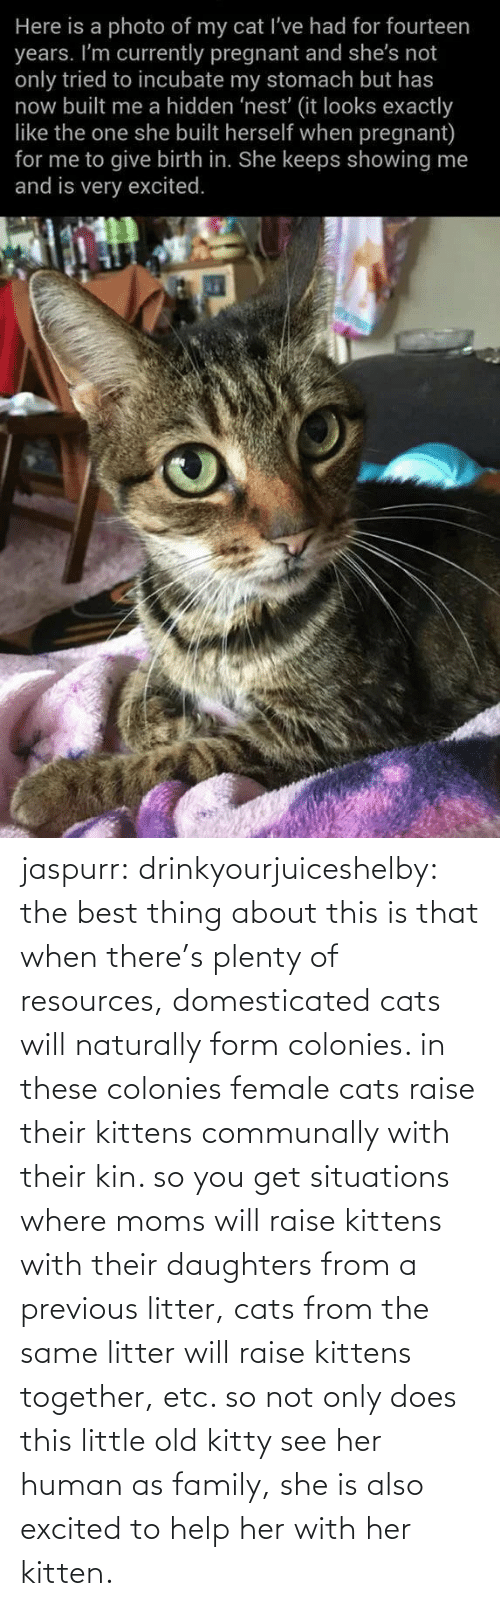 human: jaspurr:  drinkyourjuiceshelby:    the best thing about this is that when there's plenty of resources, domesticated cats will naturally form colonies. in these colonies female cats raise their kittens communally with their kin. so you get situations where moms will raise kittens with their daughters from a previous litter, cats from the same litter will raise kittens together, etc. so not only does this little old kitty see her human as family, she is also excited to help her with her kitten.